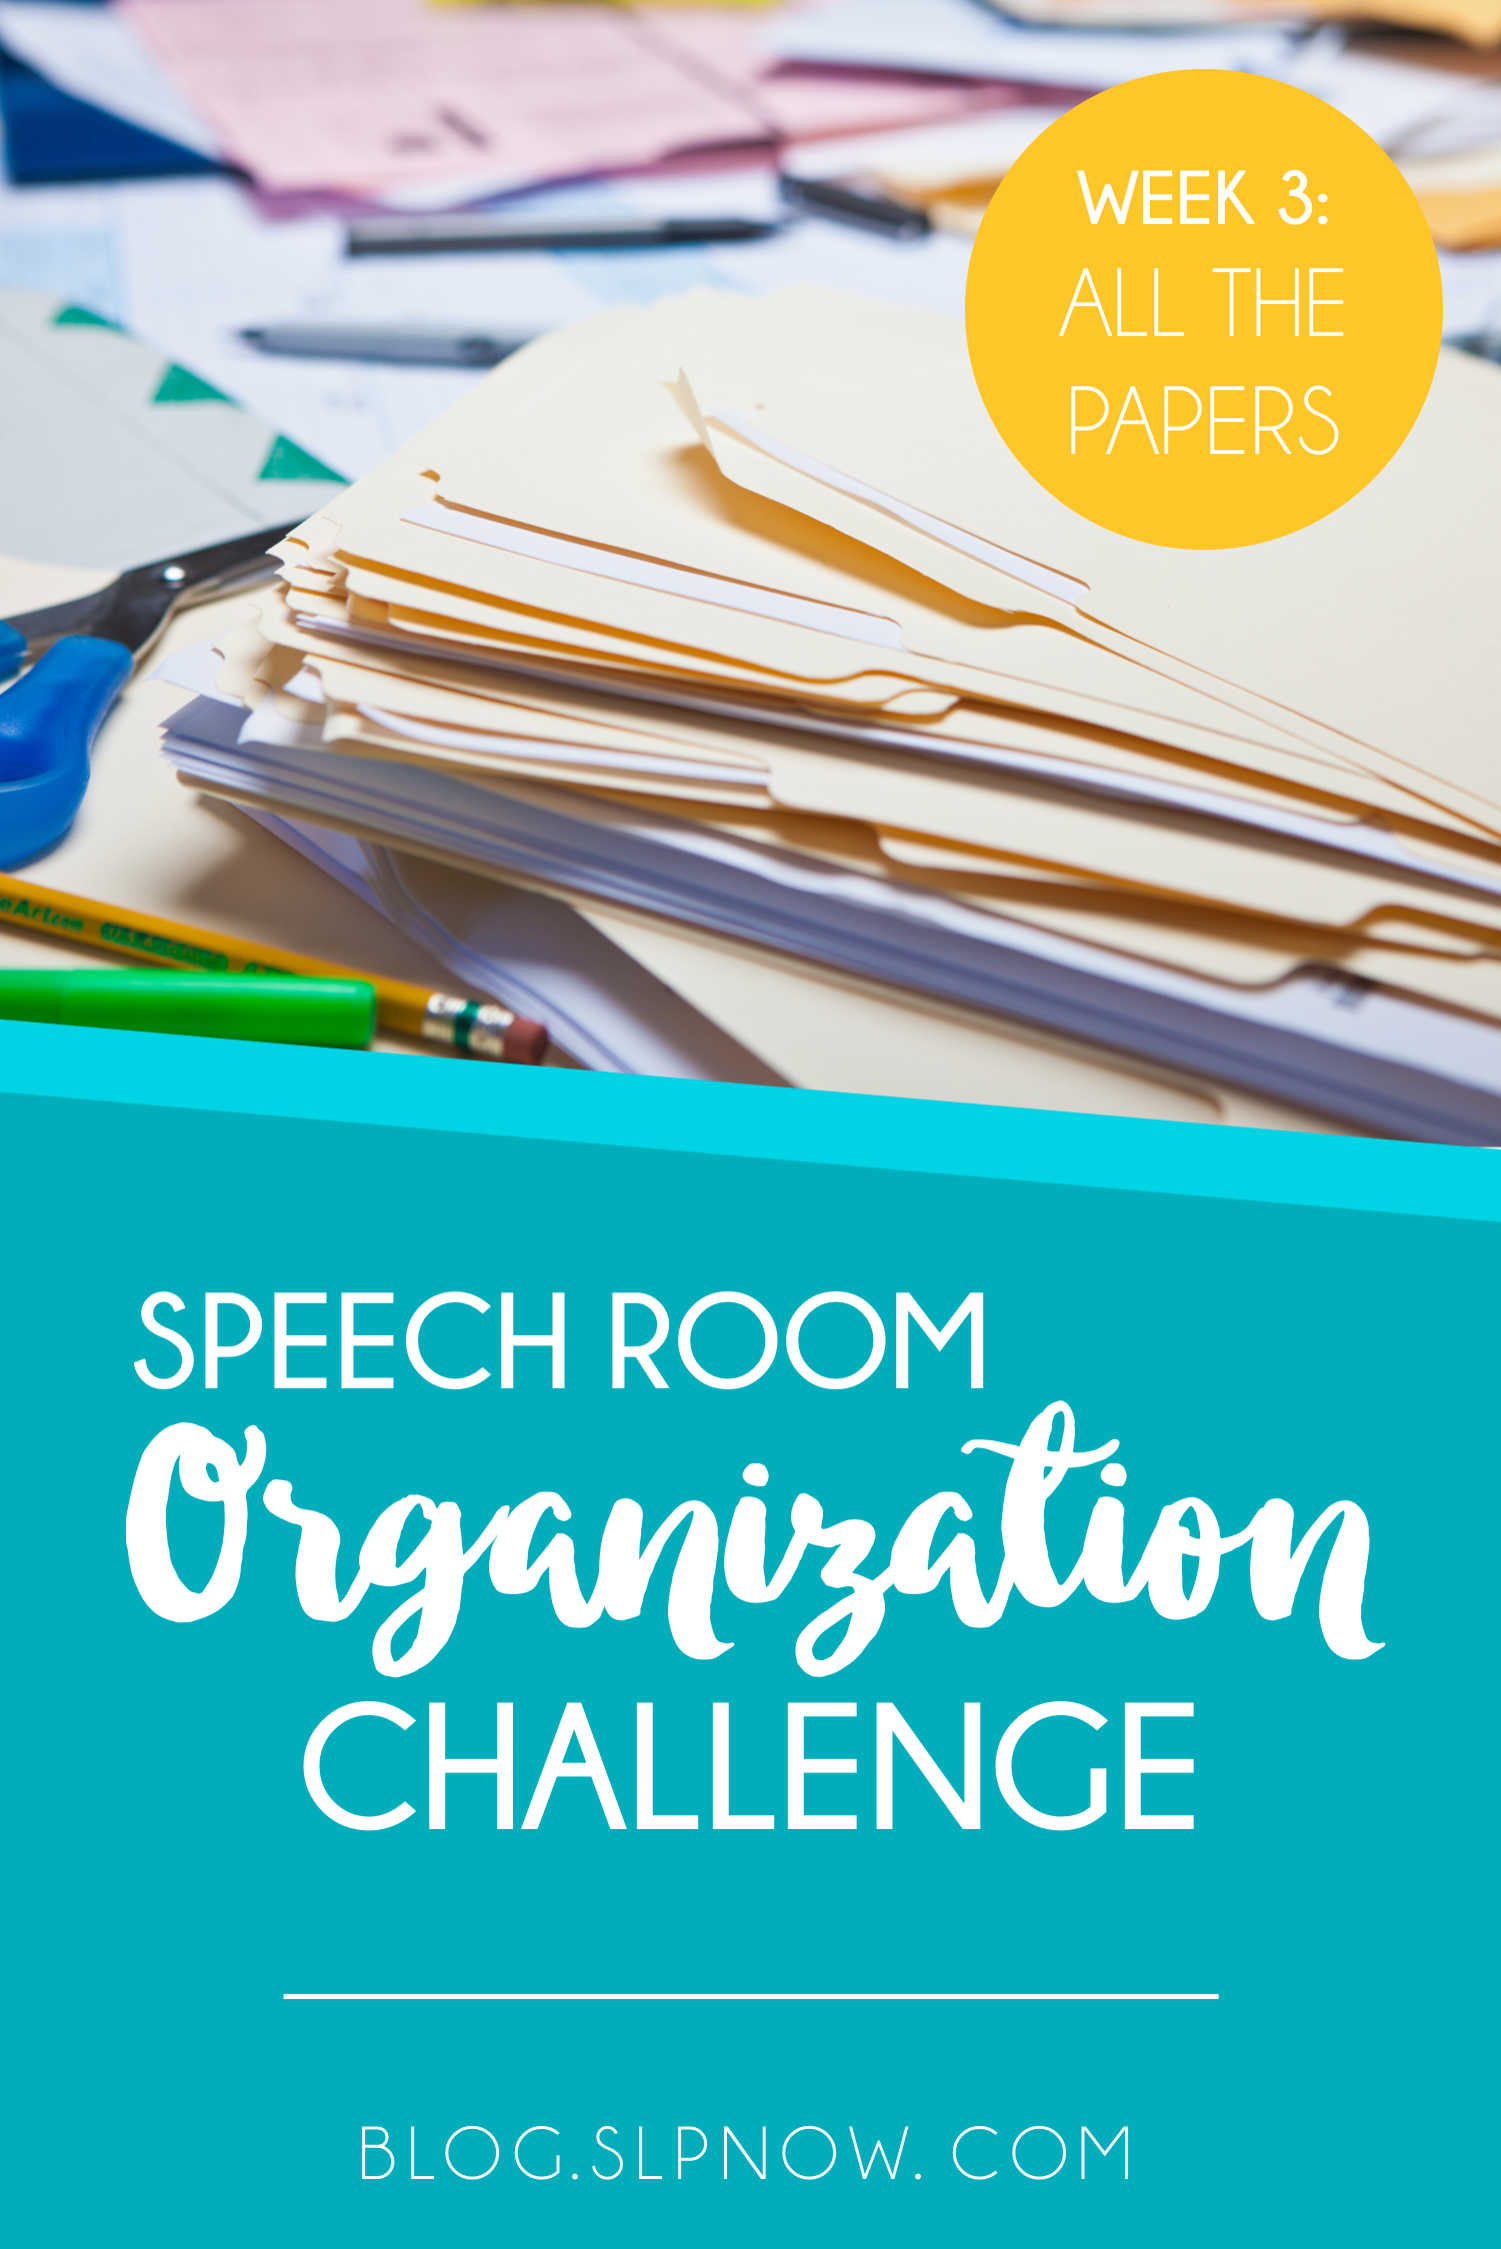 Every SLP has WAY too many paper materials! Between therapy materials, IEP documentation, and everything else, our rooms get cluttered and disorganized fast. Check out the list of tools in this post, all of which will help you organize the paper materials in your speech room!